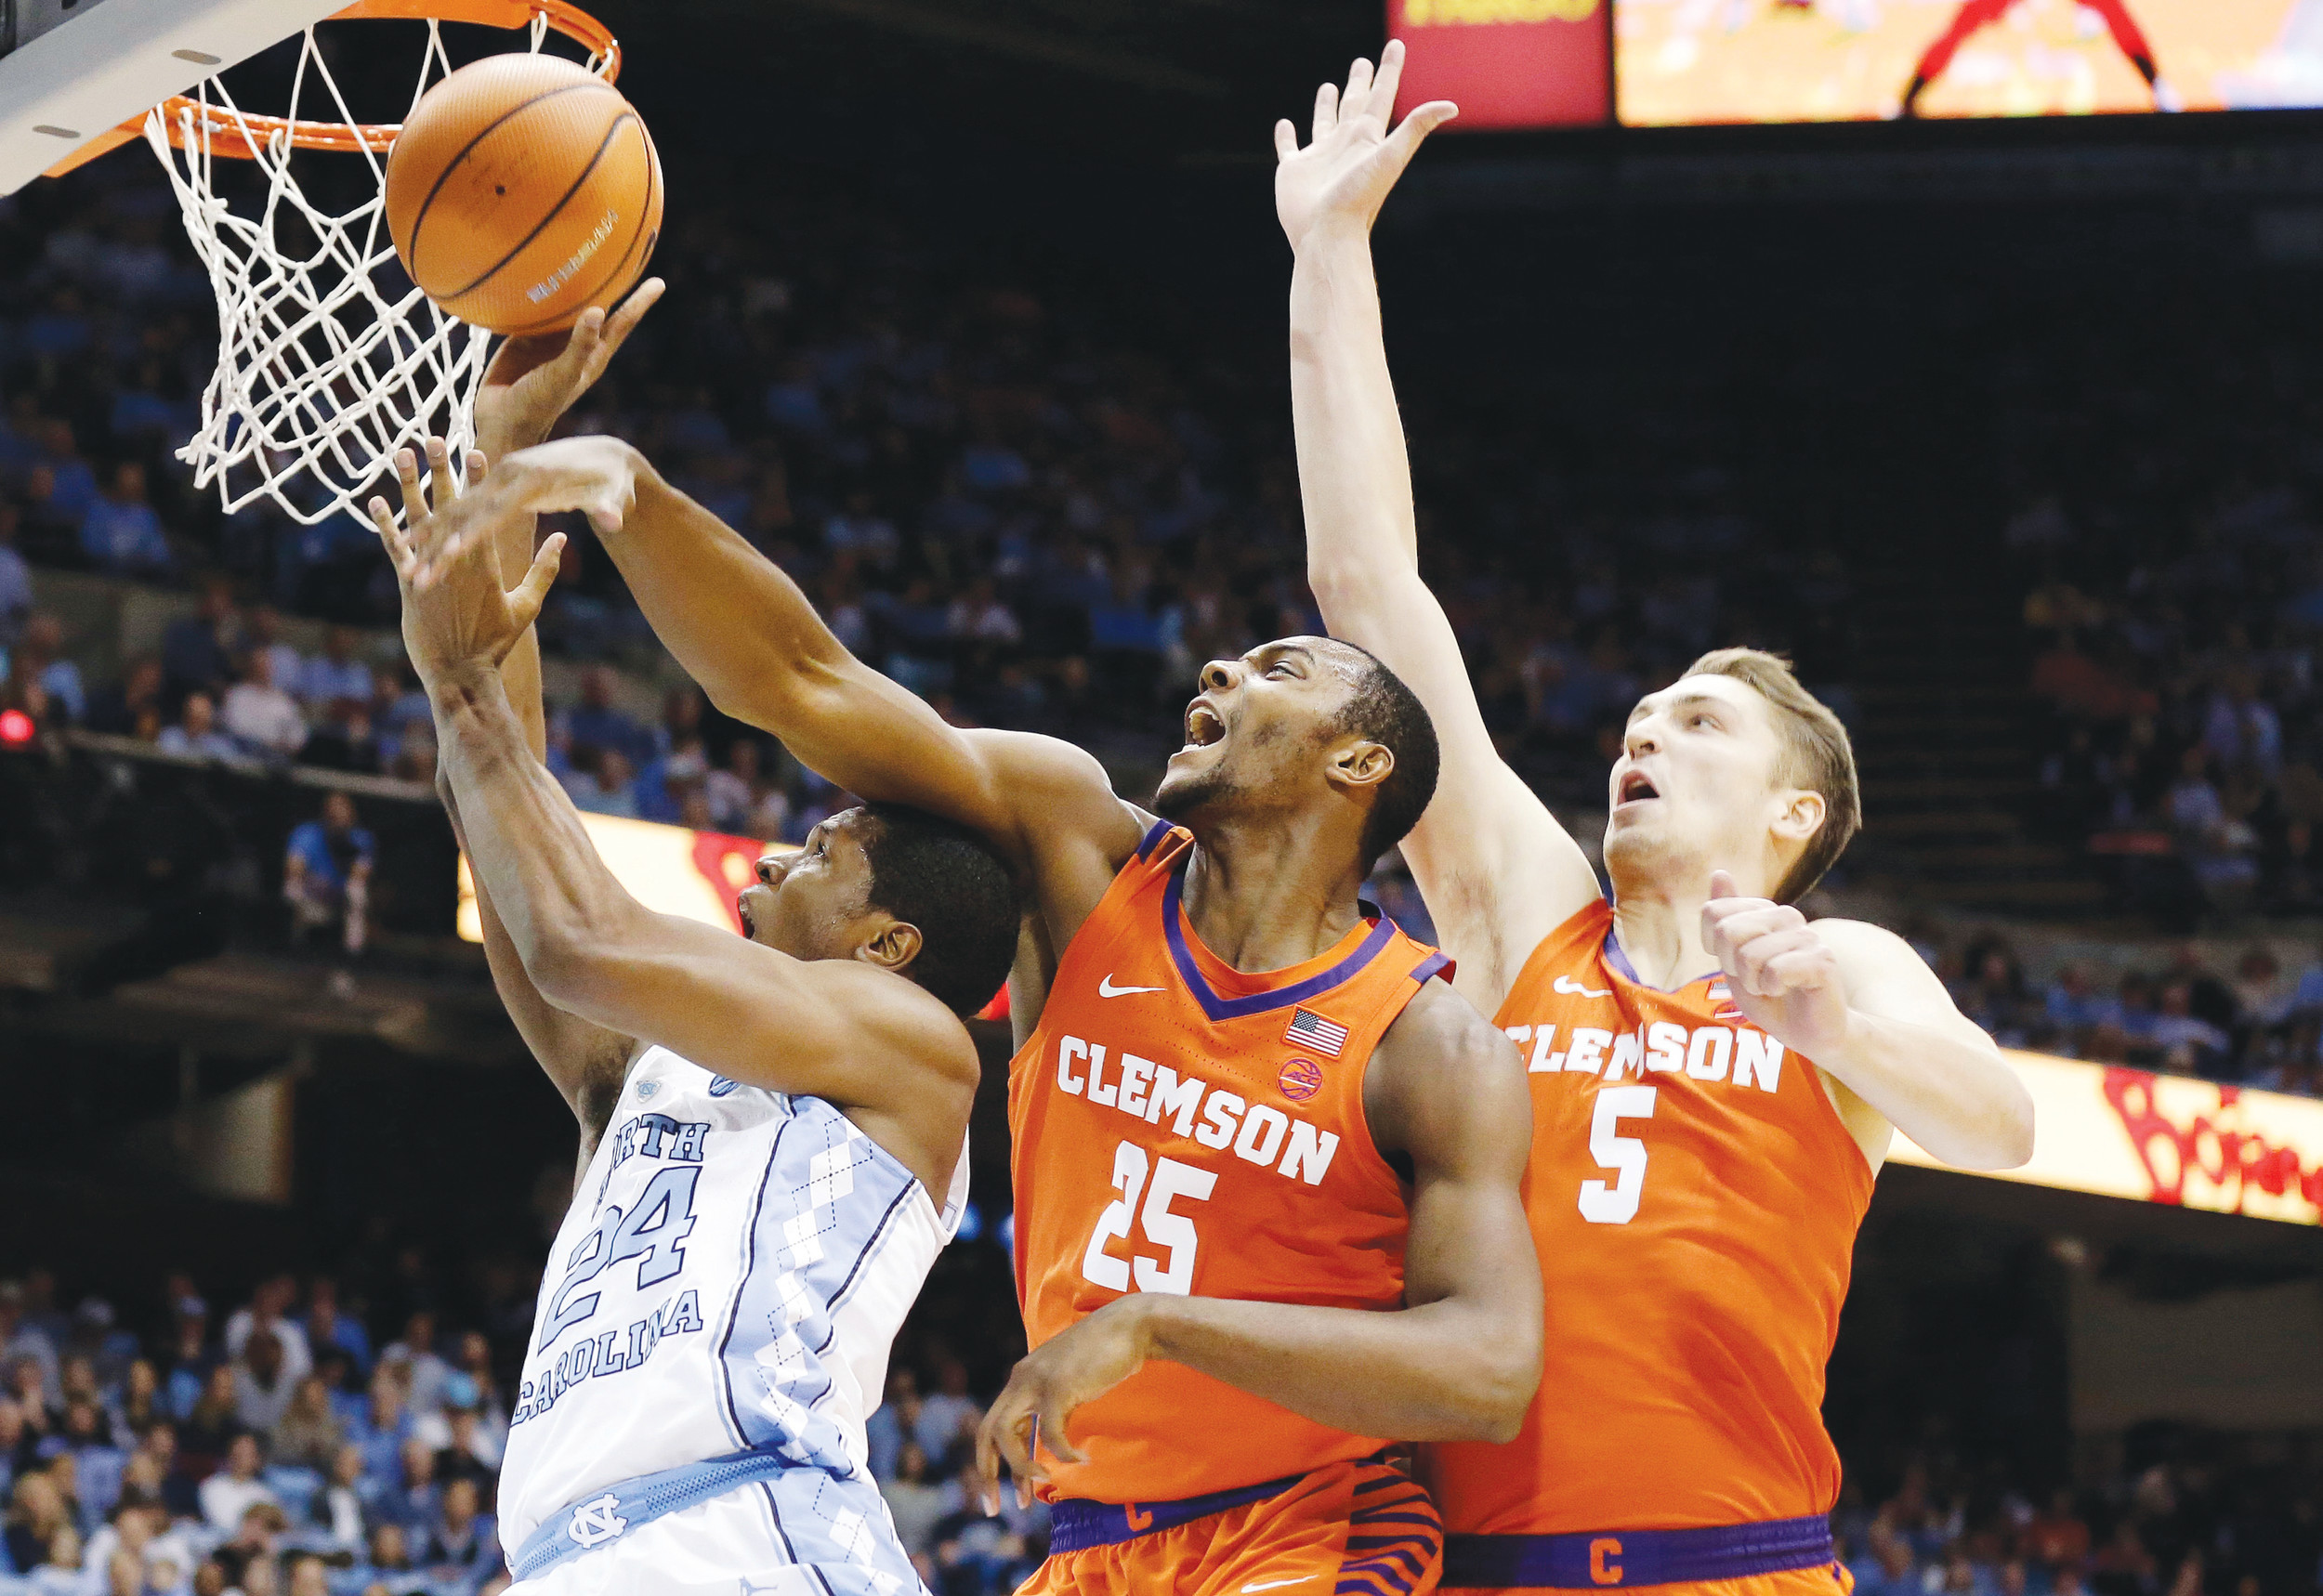 North Carolina's Kenny Williams (24) drives to the basket against Clemson's Aamir Simms (25) and Mark Donnal (5) during the first half of the Tar Heels' 87-79 victory over the Tigers in Chapel Hill, North Carolina on Tuesday. UNC improved to 59-0 all-time at home against Clemson.